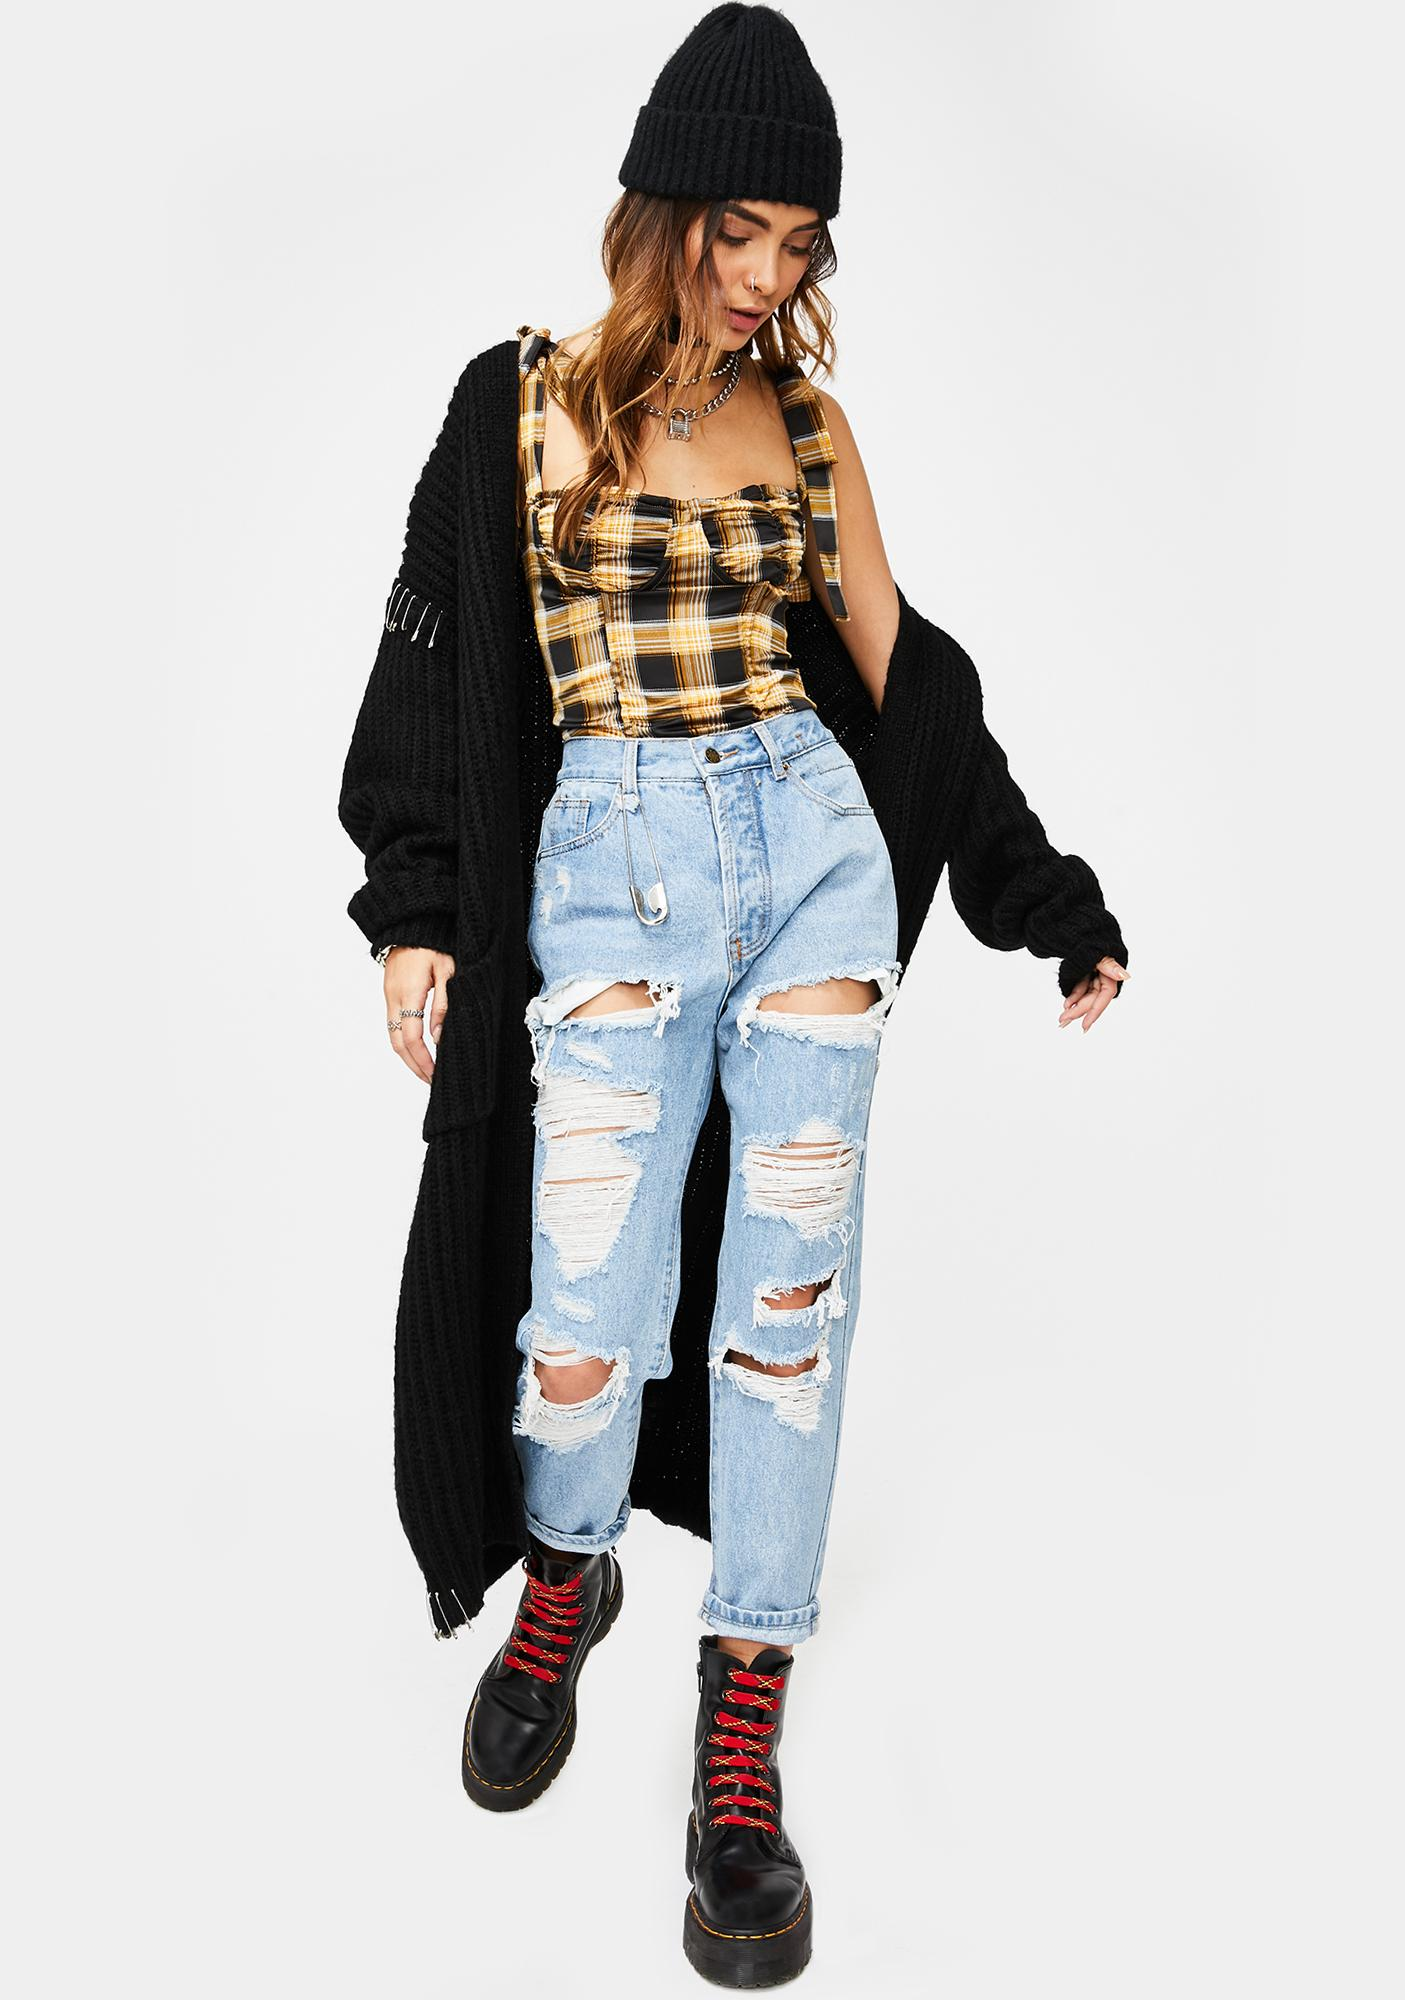 Lioness Boo'd Up Yellow Plaid Bustier Top